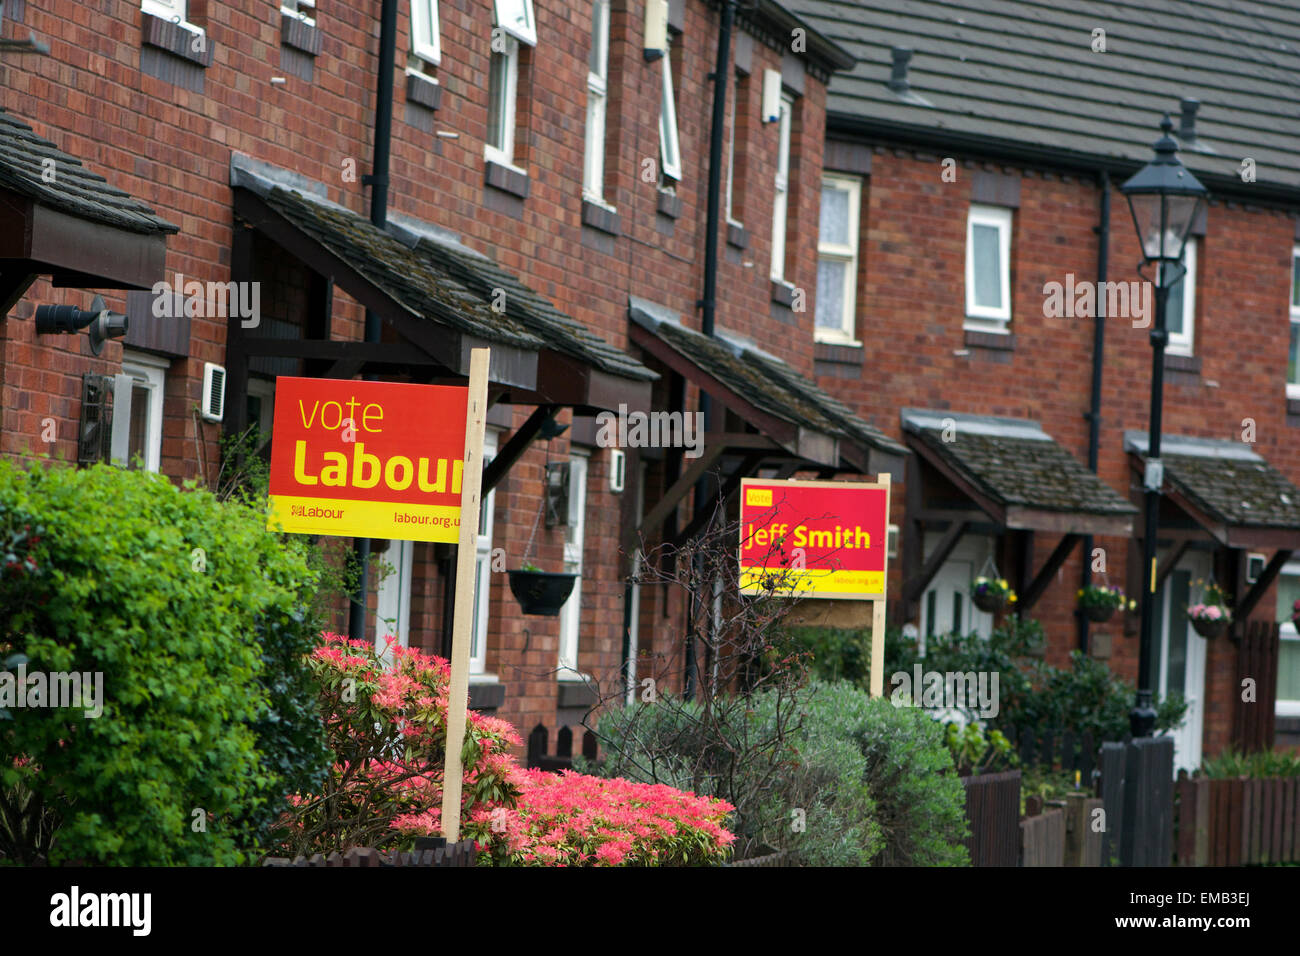 Didsbury, Manchester, UK. 19th April, 2015. General Election  Two adjoining houses in Grove Lane, Didsbury in the Stock Photo